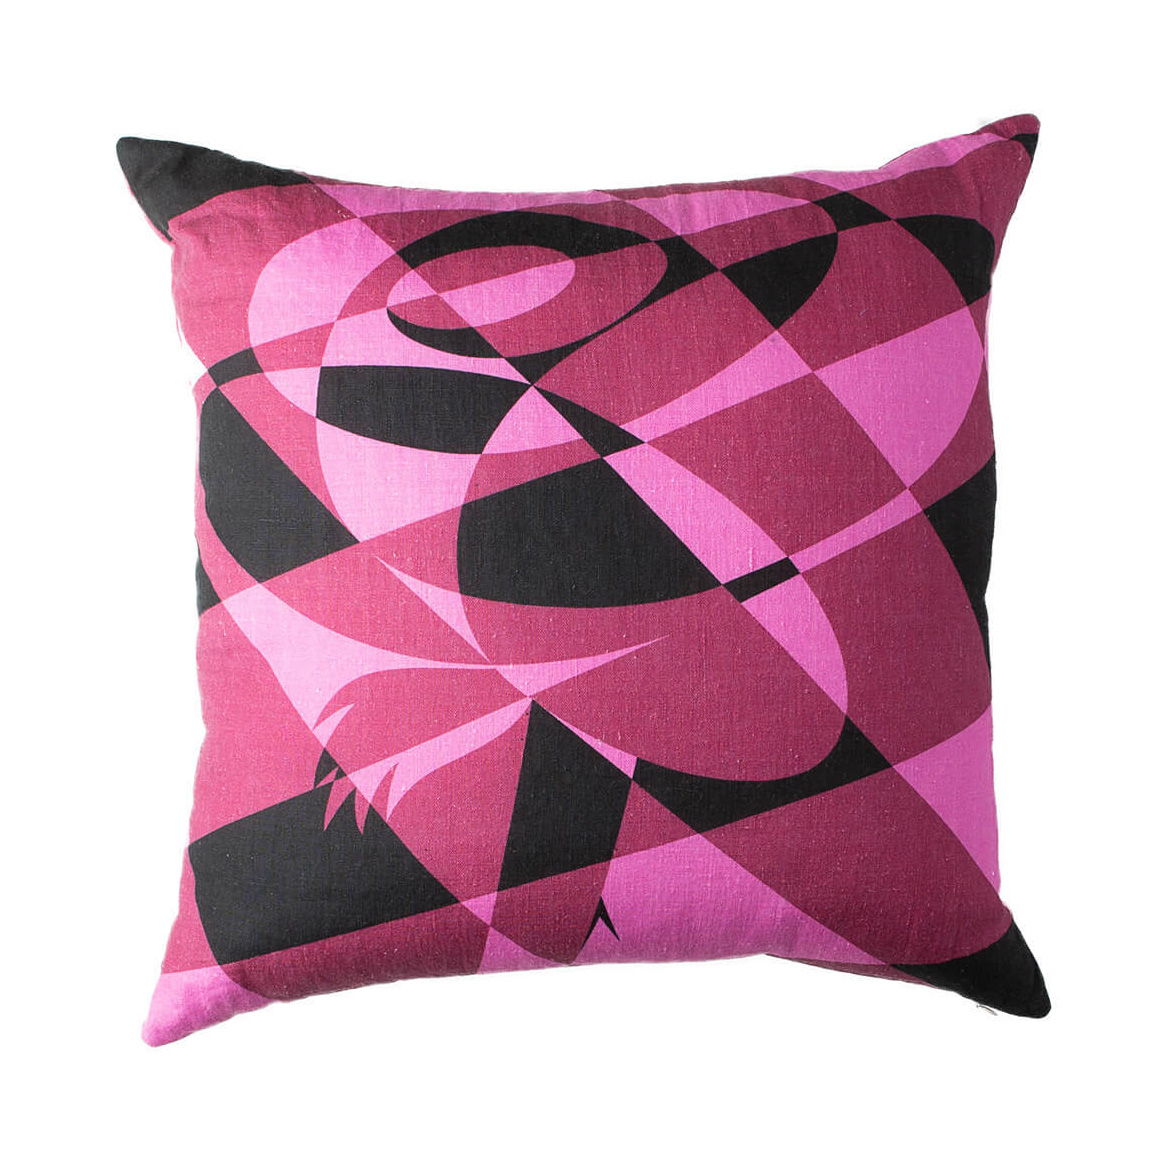 Fierce Magenta Lumberjack Rose Throw Pillow